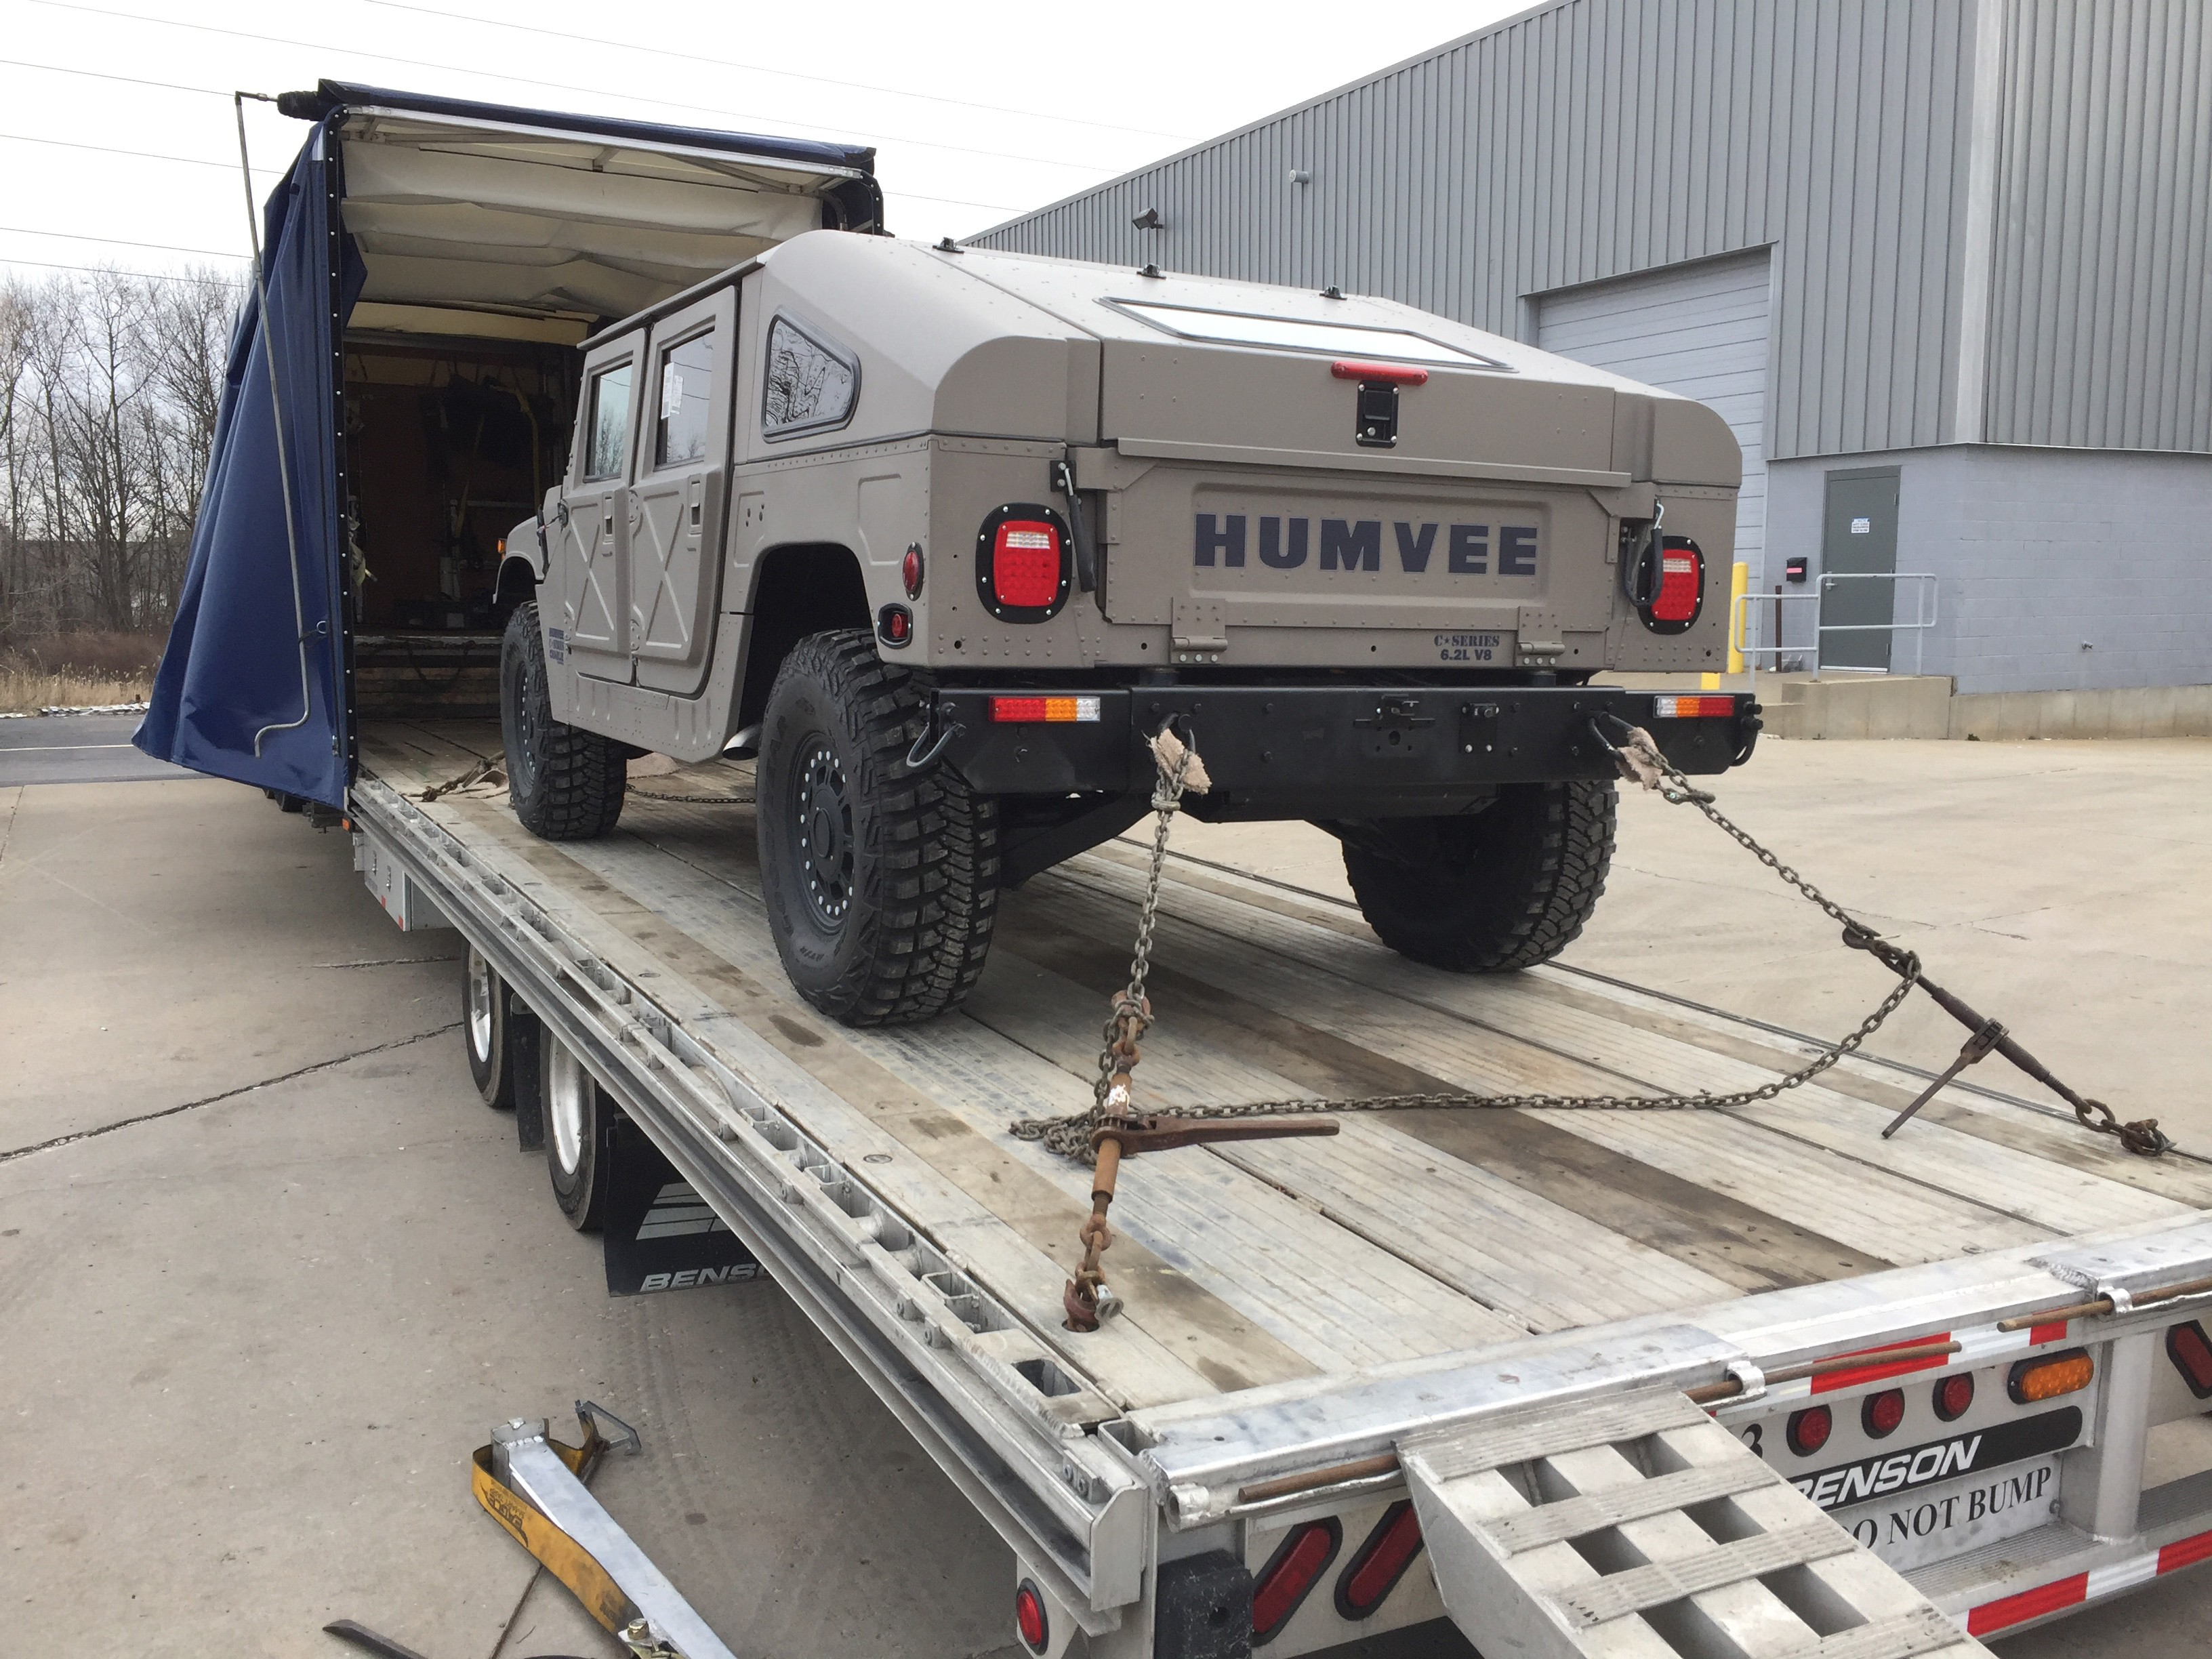 Hummer Recalled Over Vehicle Fire Risk 3 People Injured Because